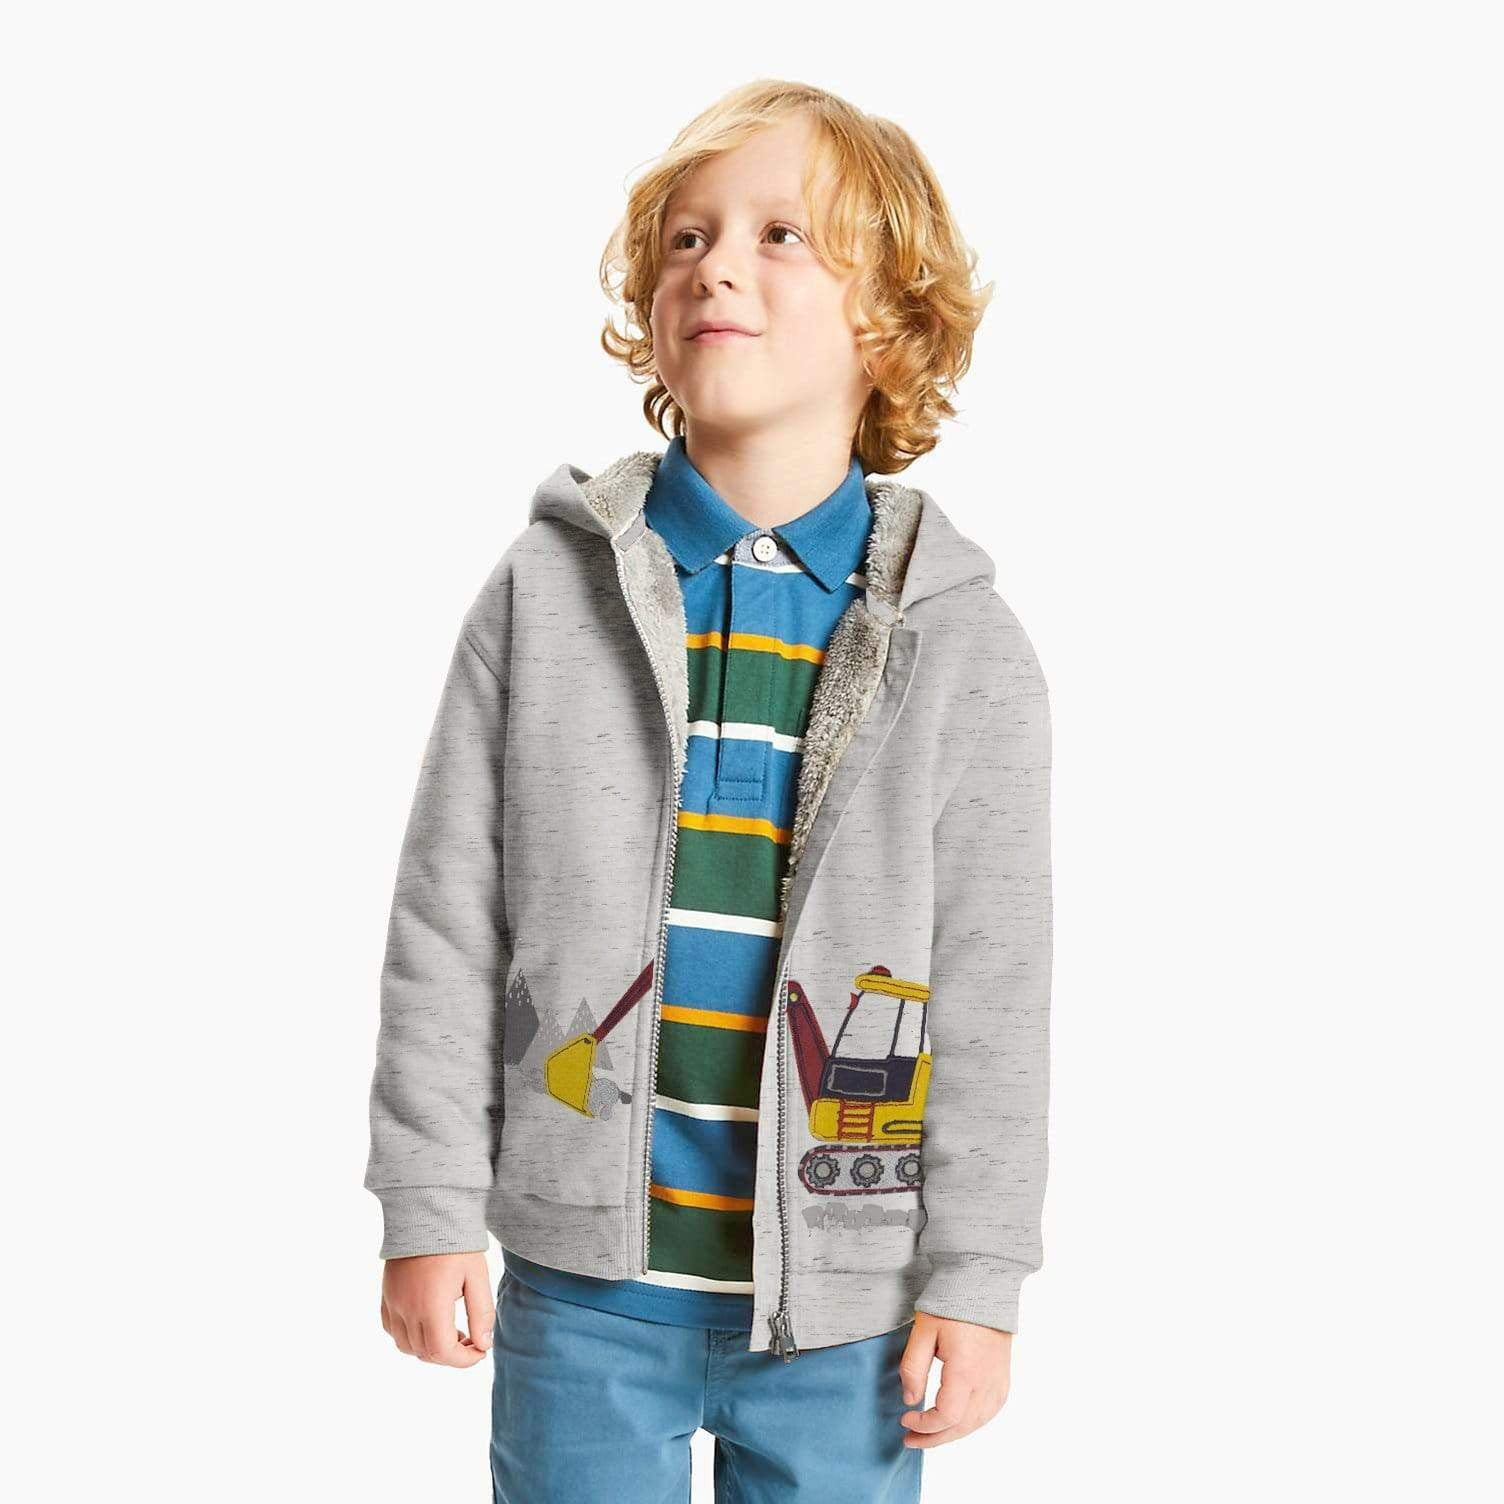 Henry James Boy's Zipper Hoodie Ash / 2-3 Years Boy's Henry James Fur Lined ZIPPER Hoodie